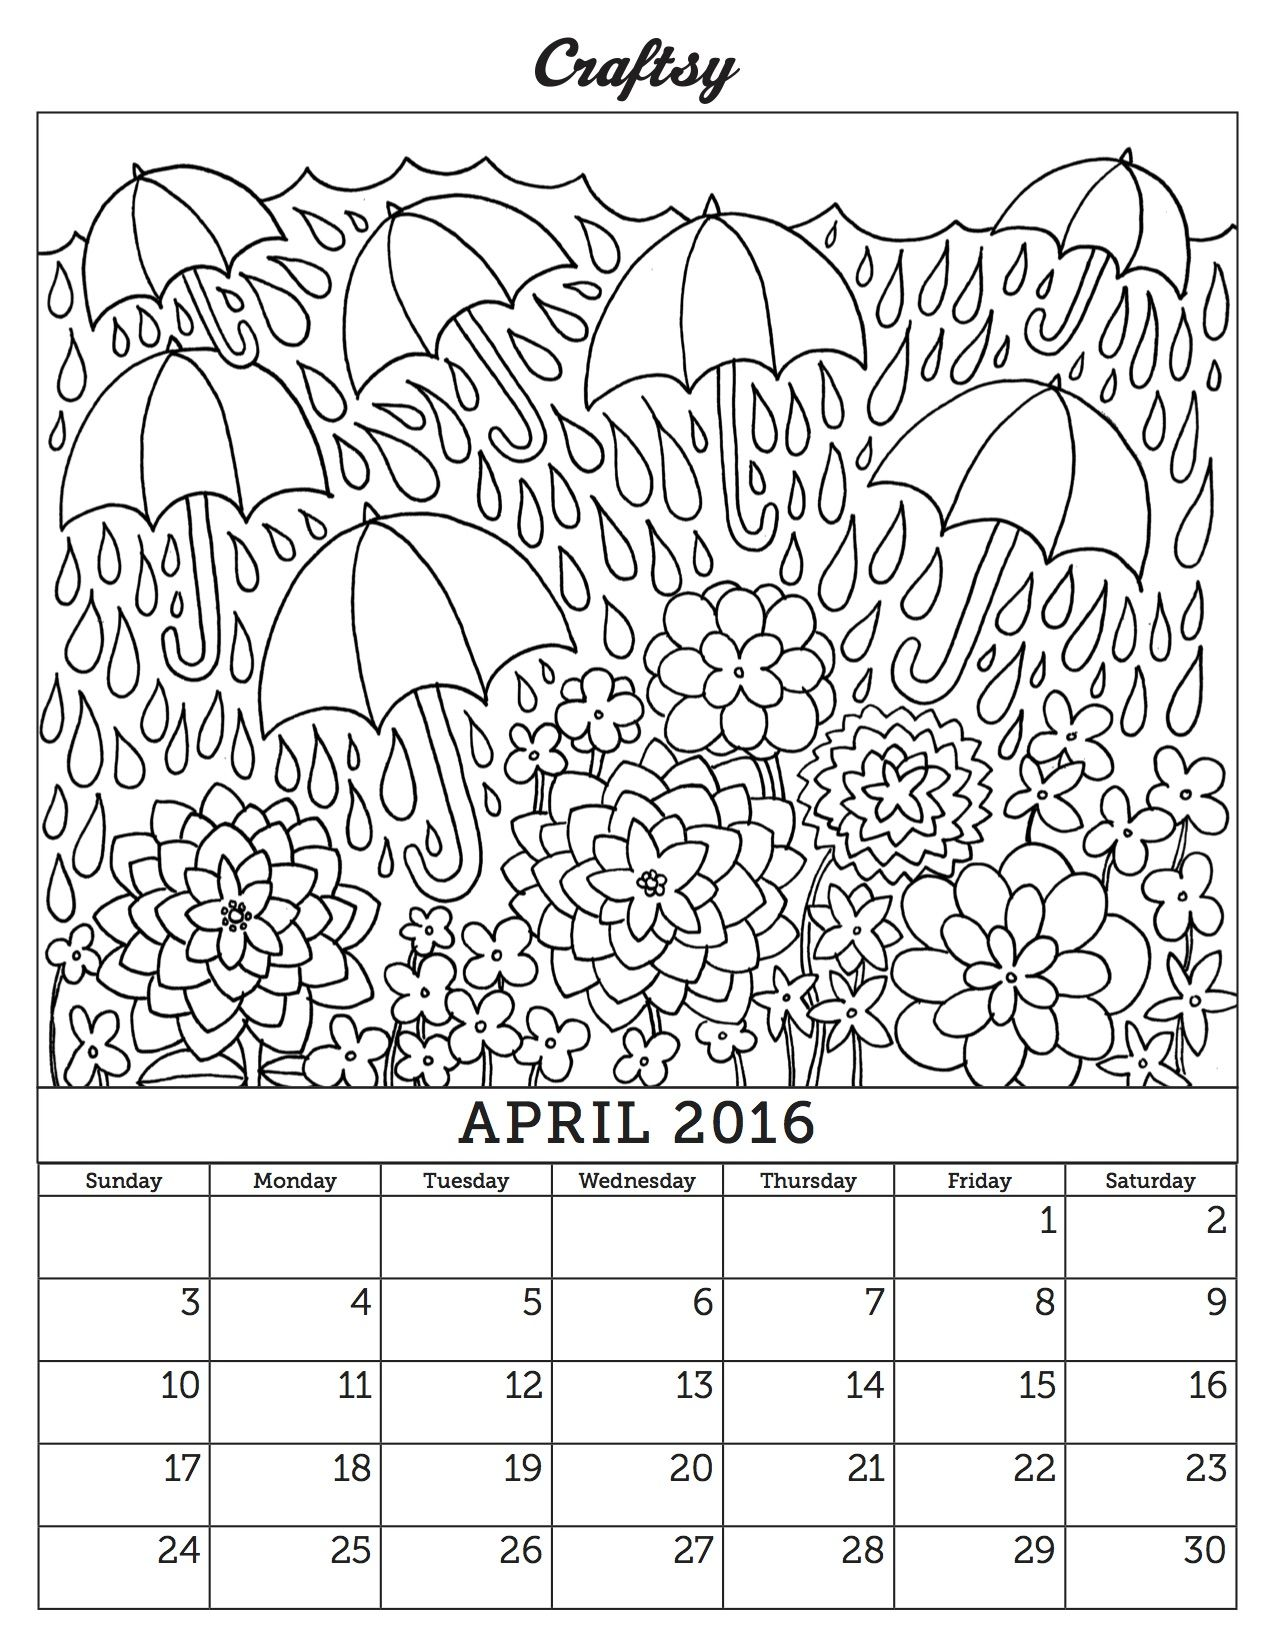 FREE April 2016 Coloring Page Calendar